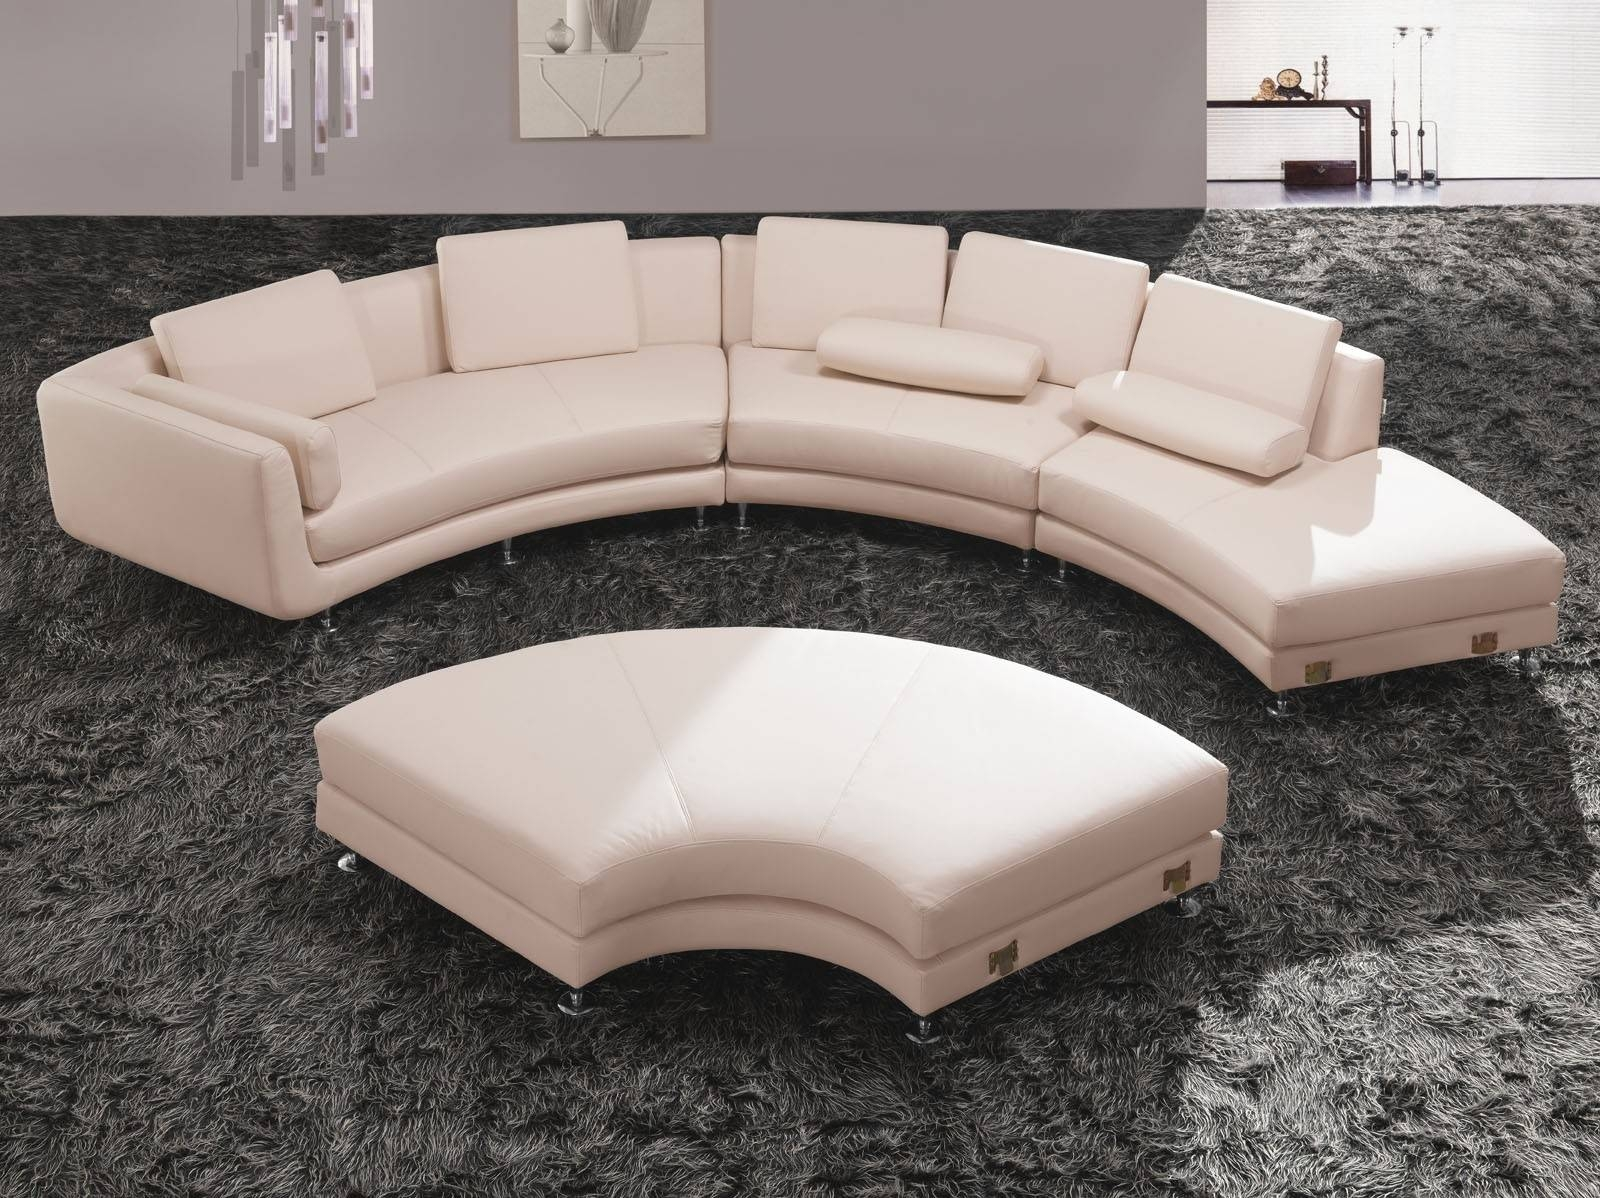 Furniture: Simple Decoration Curved Sectional Sofa Best Sofa within Circle Sectional Sofa (Image 10 of 30)